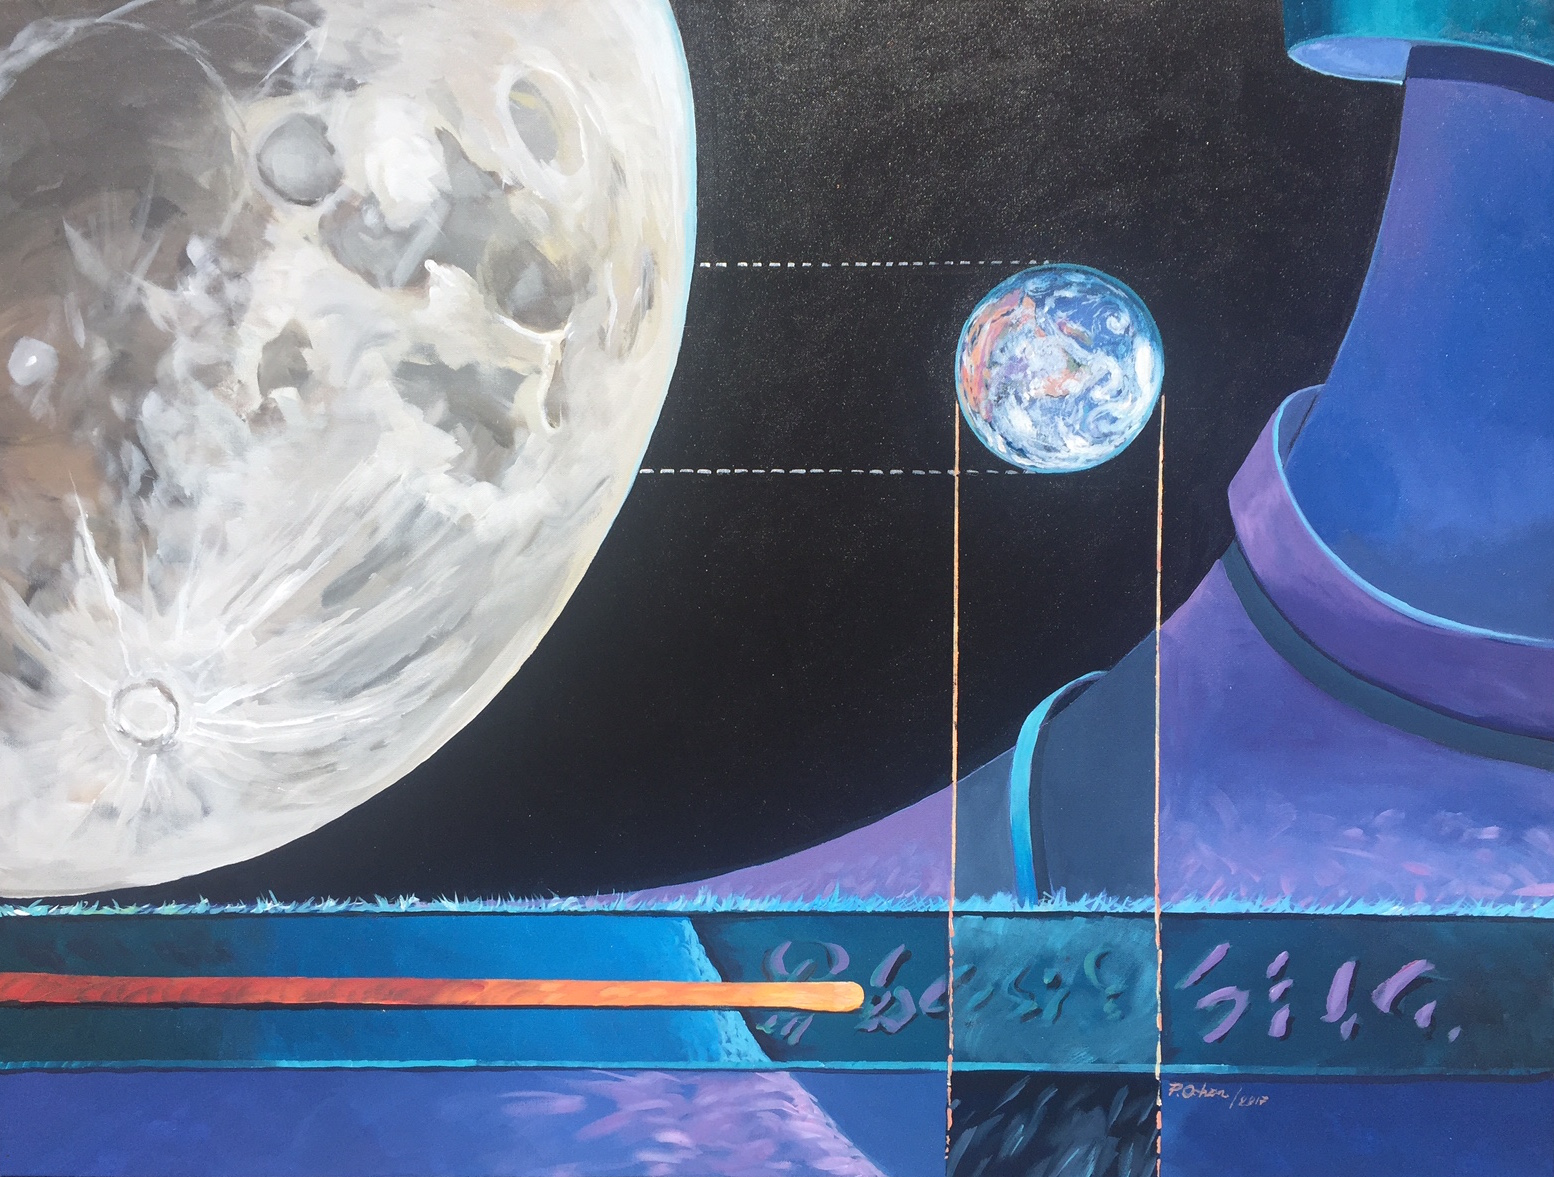 Vision Two artwork by Patricio Ochoa - art listed for sale on Artplode